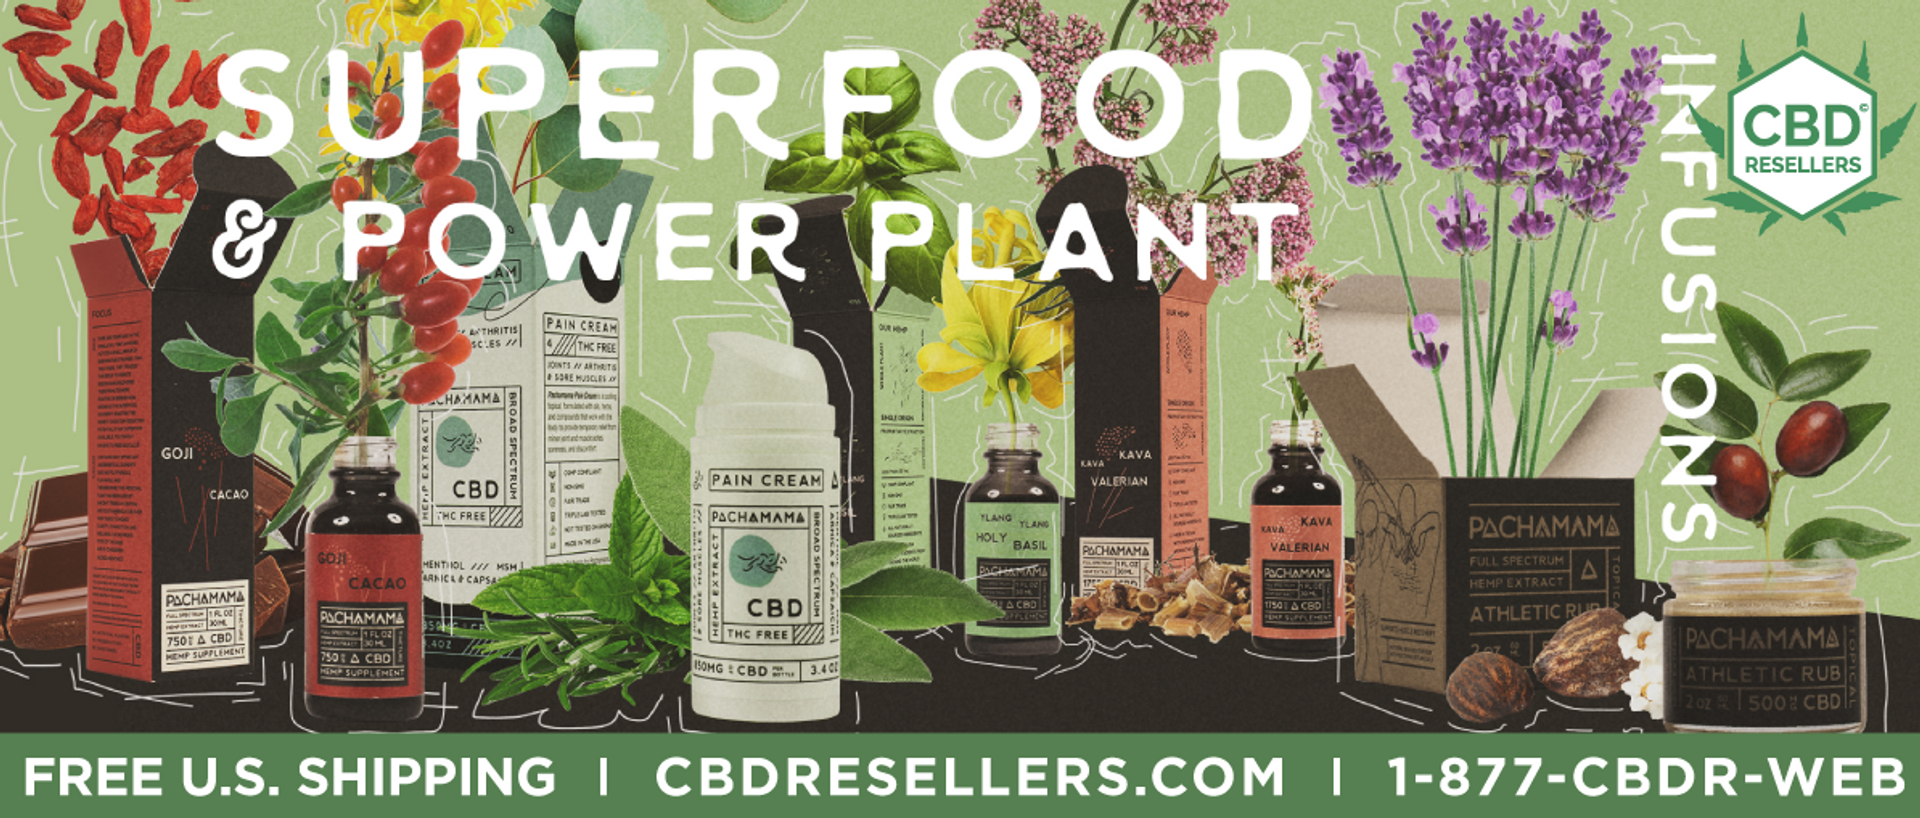 With so many CBD brands on the market, it can be hard for some companies to stand out, and gain traction. For Pachamama CBD, standing out has never been a problem. This is a company that was started with purpose and has grown into something much larger. P